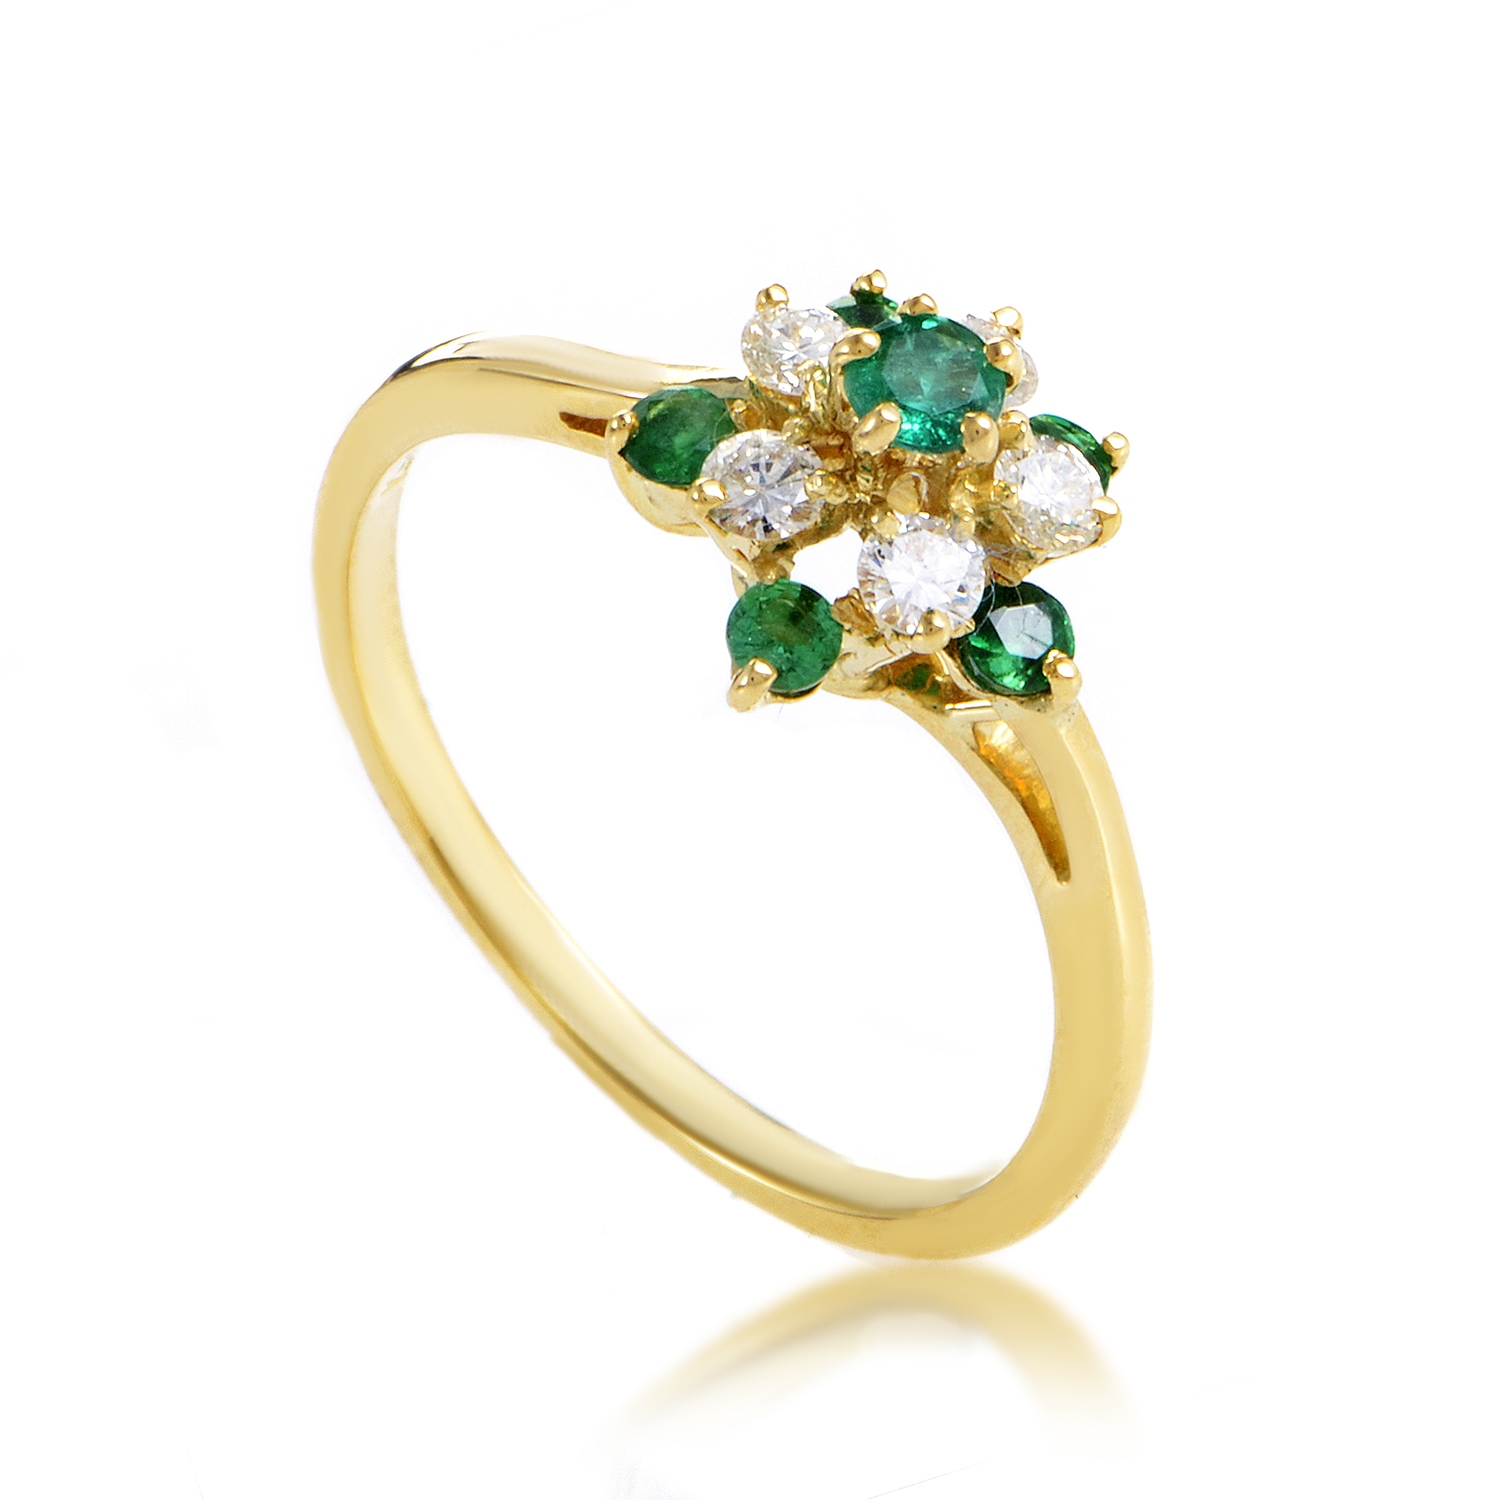 Kutchinsky Women's 18K Yellow Gold Diamond & Emerald Cluster Ring